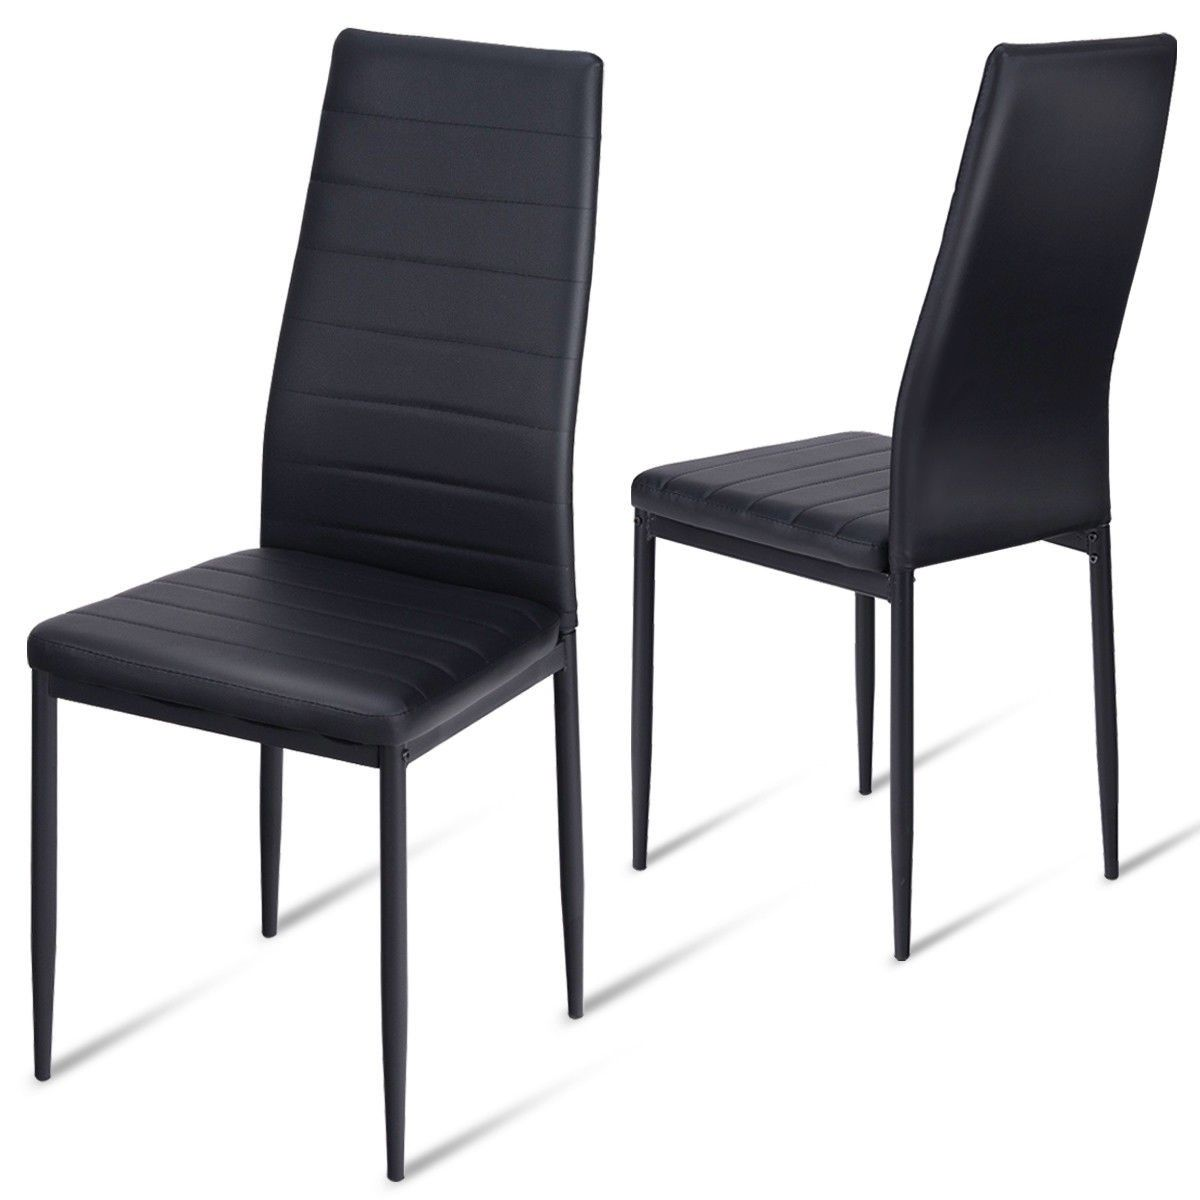 Set Of 6 High Back Dining Chairs Dining Chairs High Back Dining